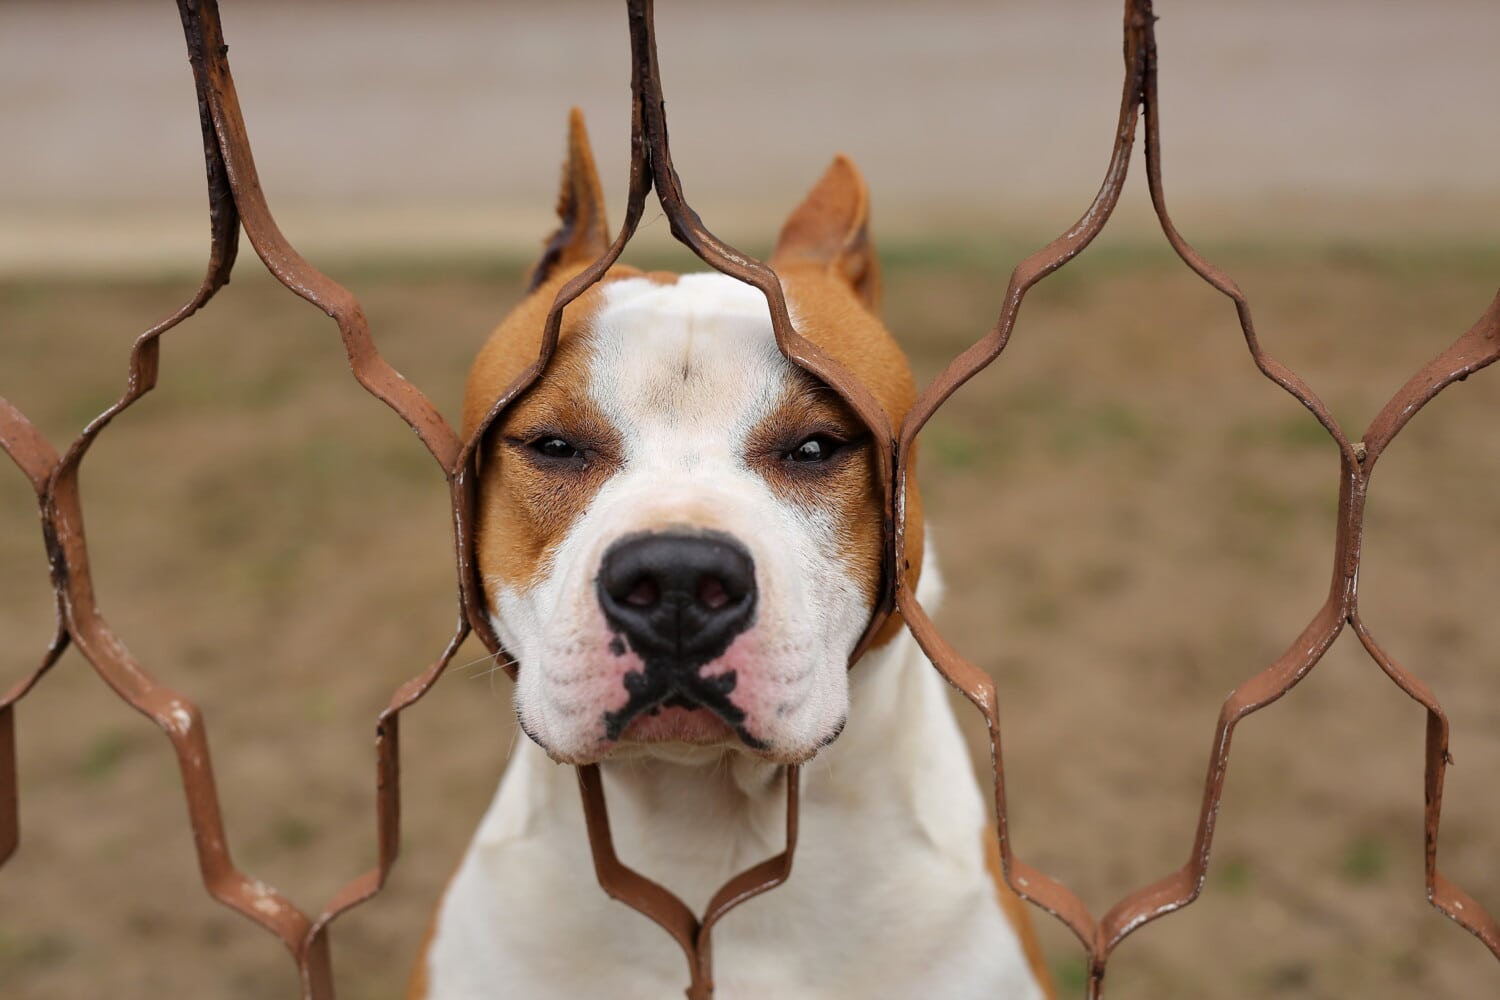 hunting dog, boxer, breed, dog, pet, canine, puppy, cute, funny, animal